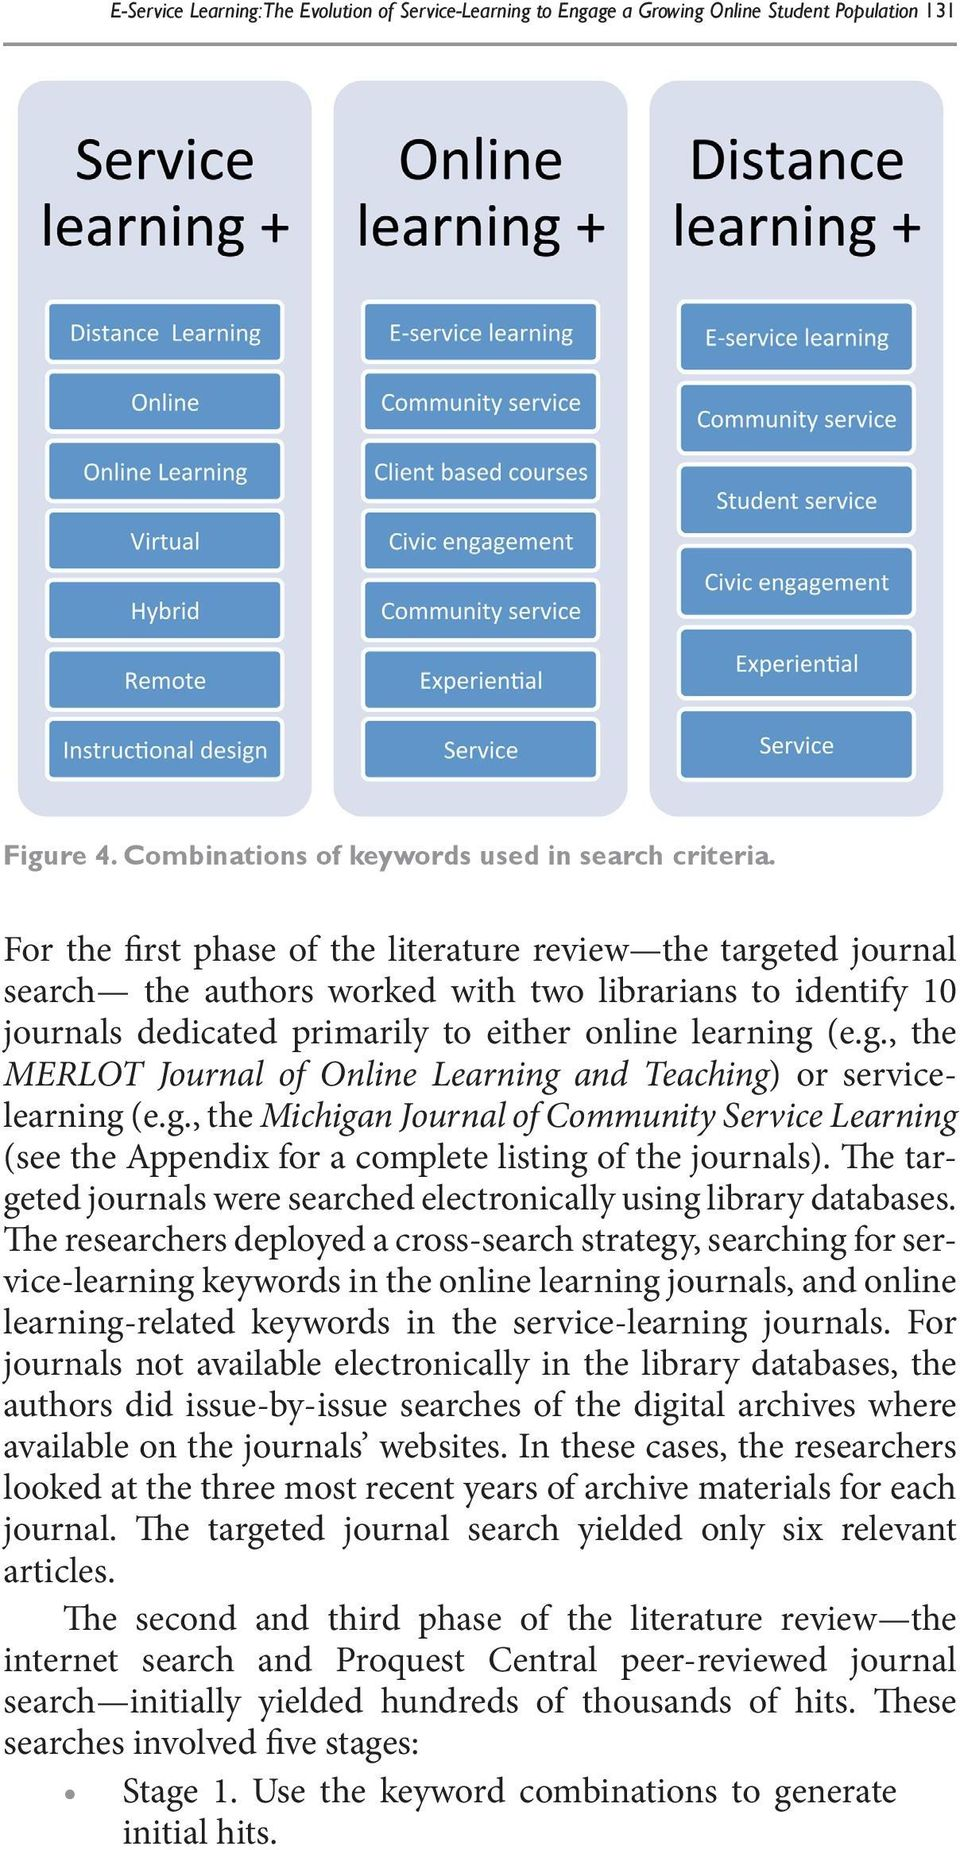 g., the Michigan Journal of Community Service Learning (see the Appendix for a complete listing of the journals). The targeted journals were searched electronically using library databases.